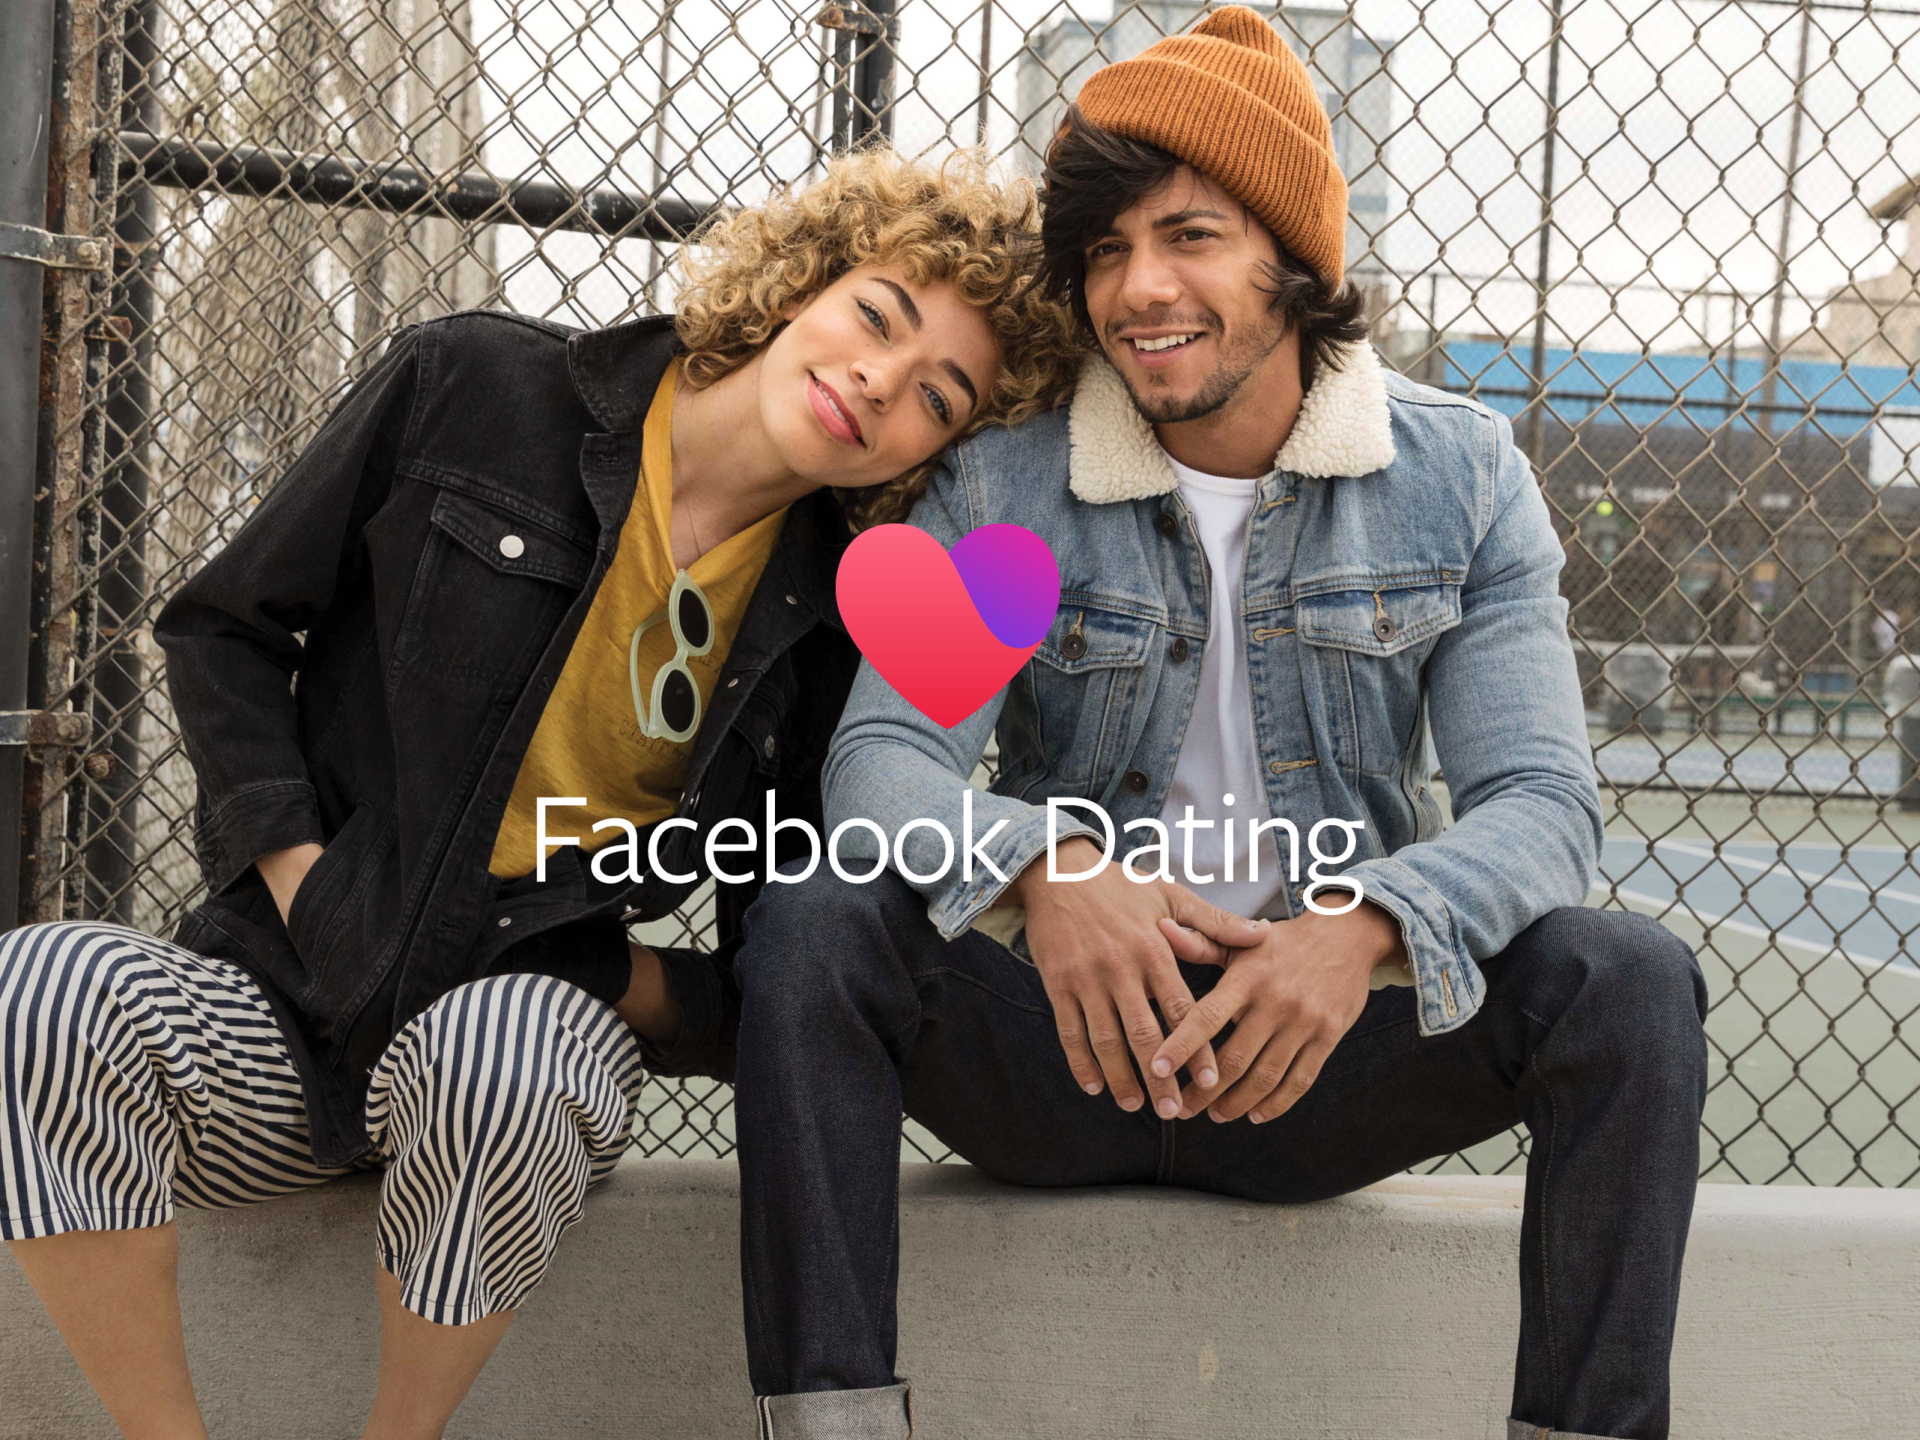 Facebook enters into the online dating world